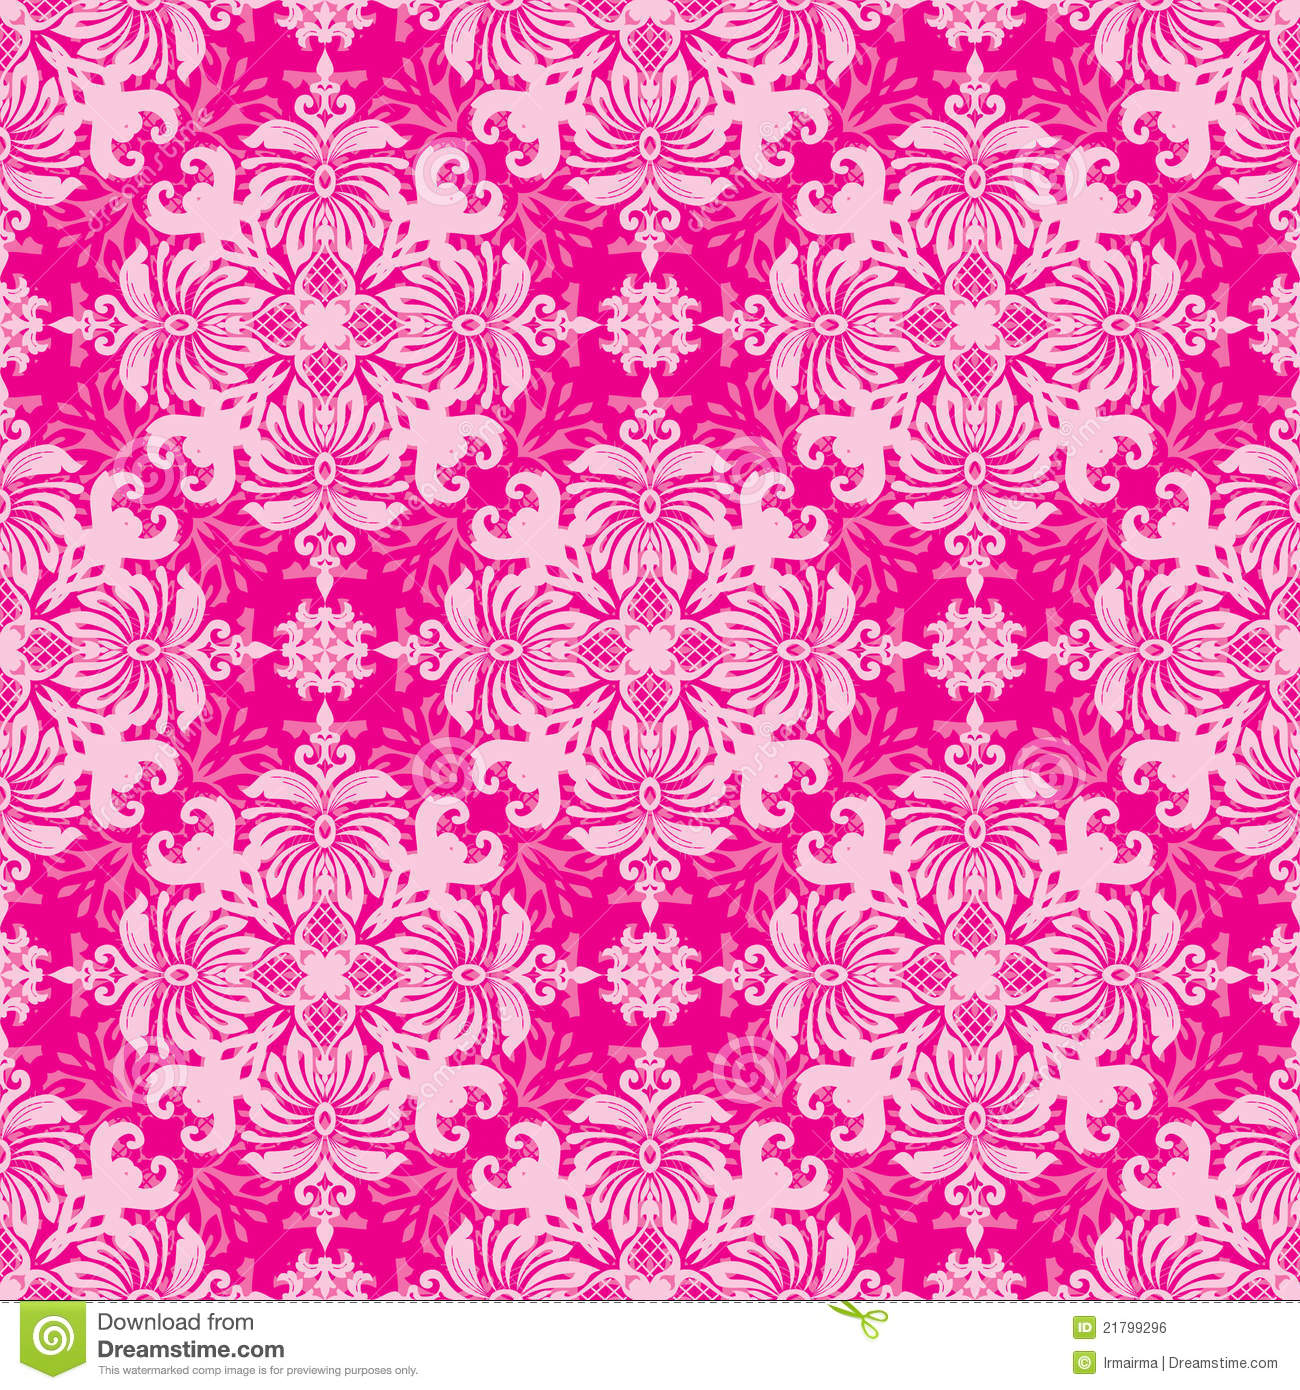 Christmas tree decorations pink - Vintage Wallpaper Royalty Free Stock Image Image 21799296